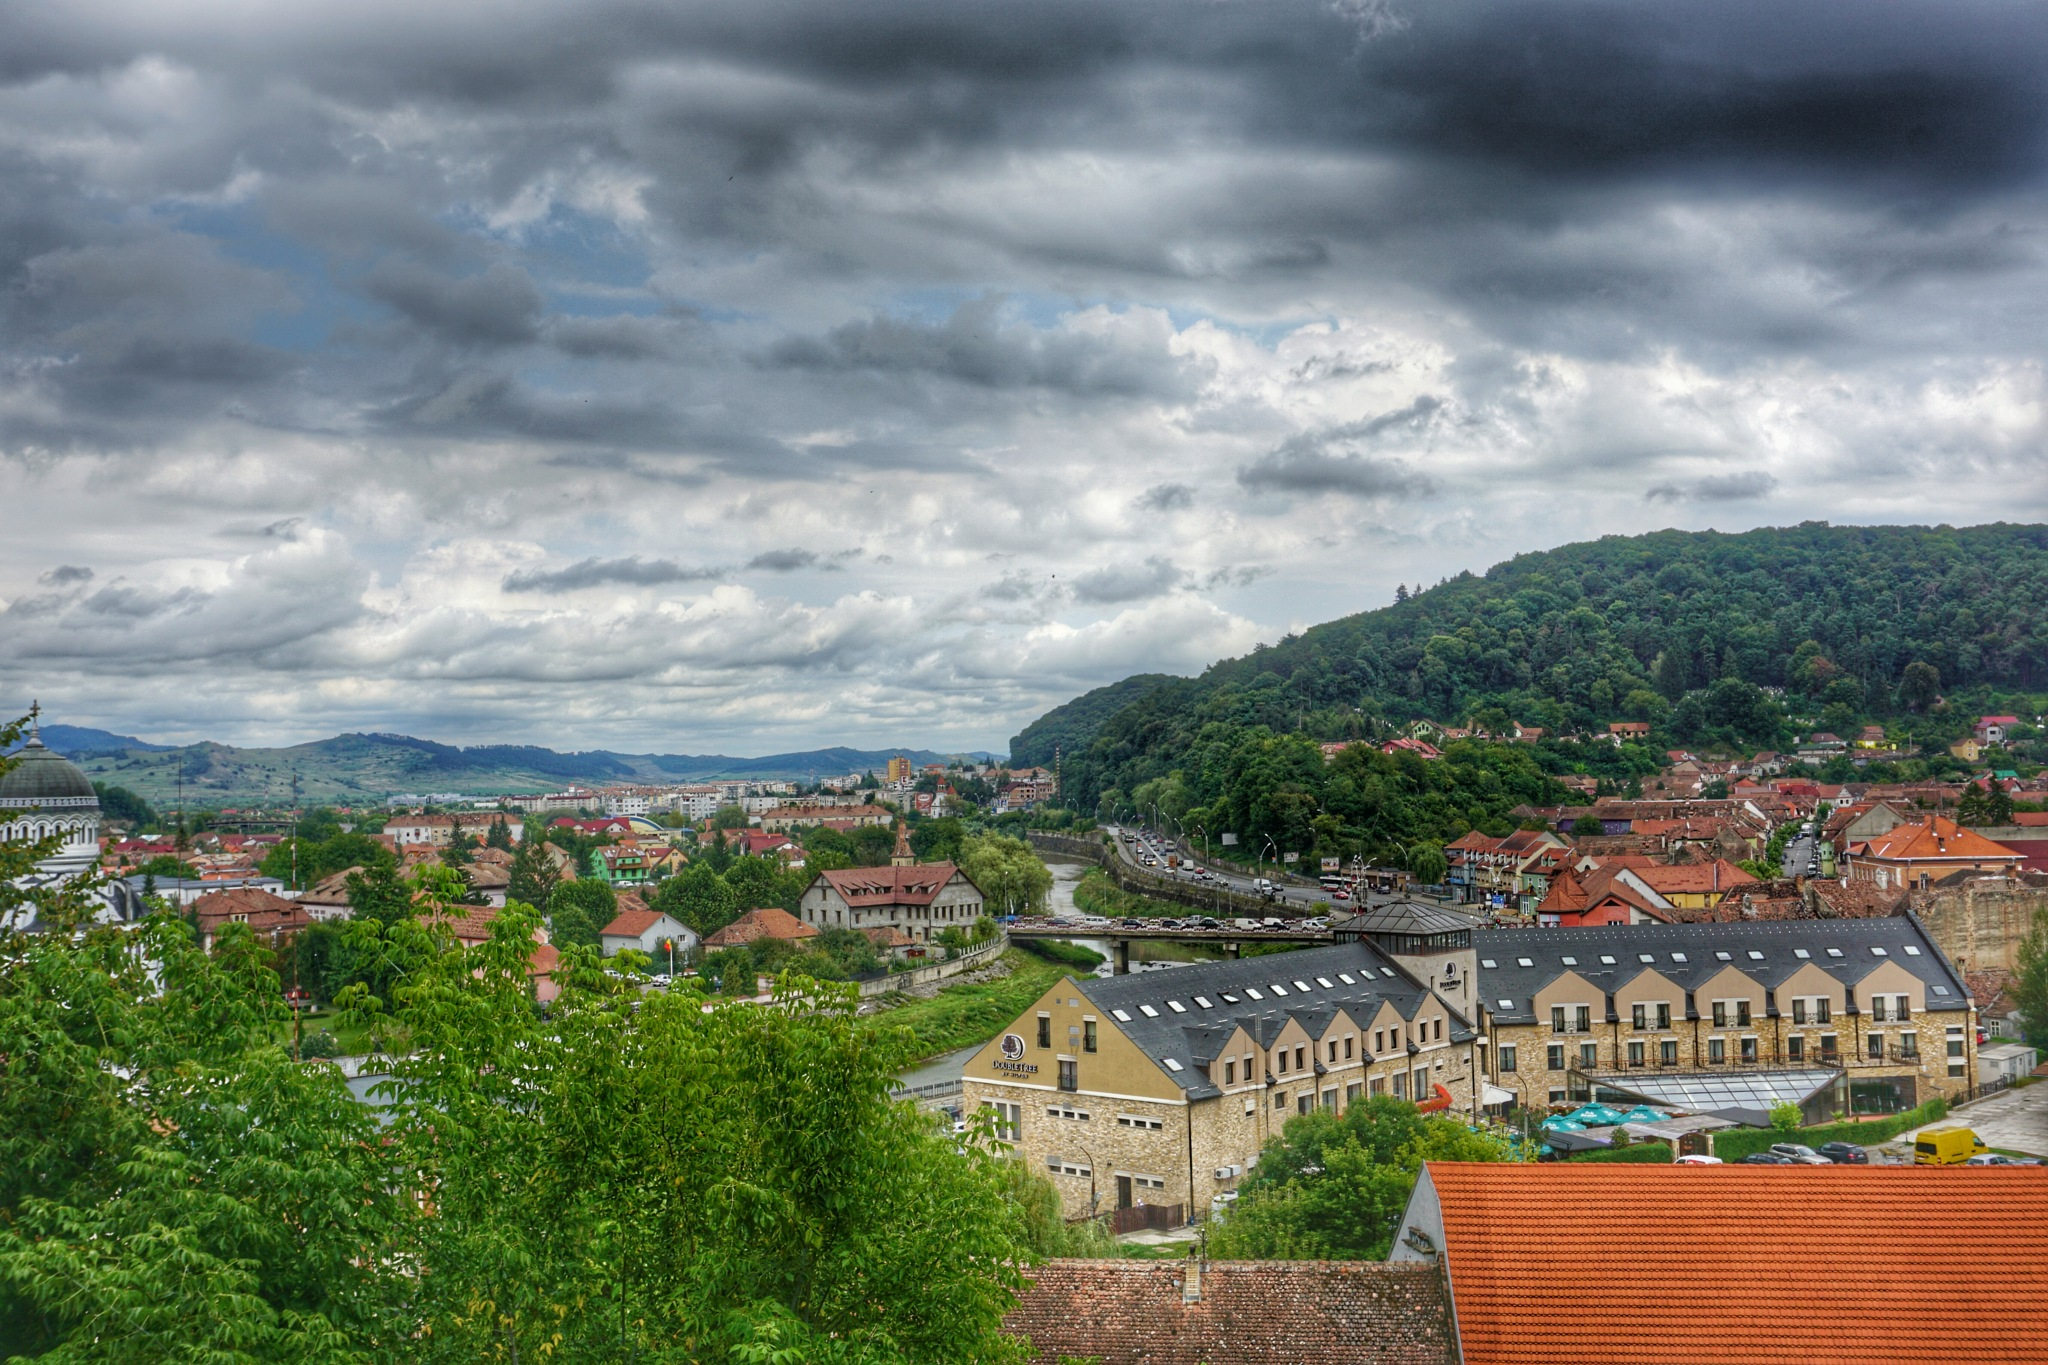 Sighisoara from above by Costin0509